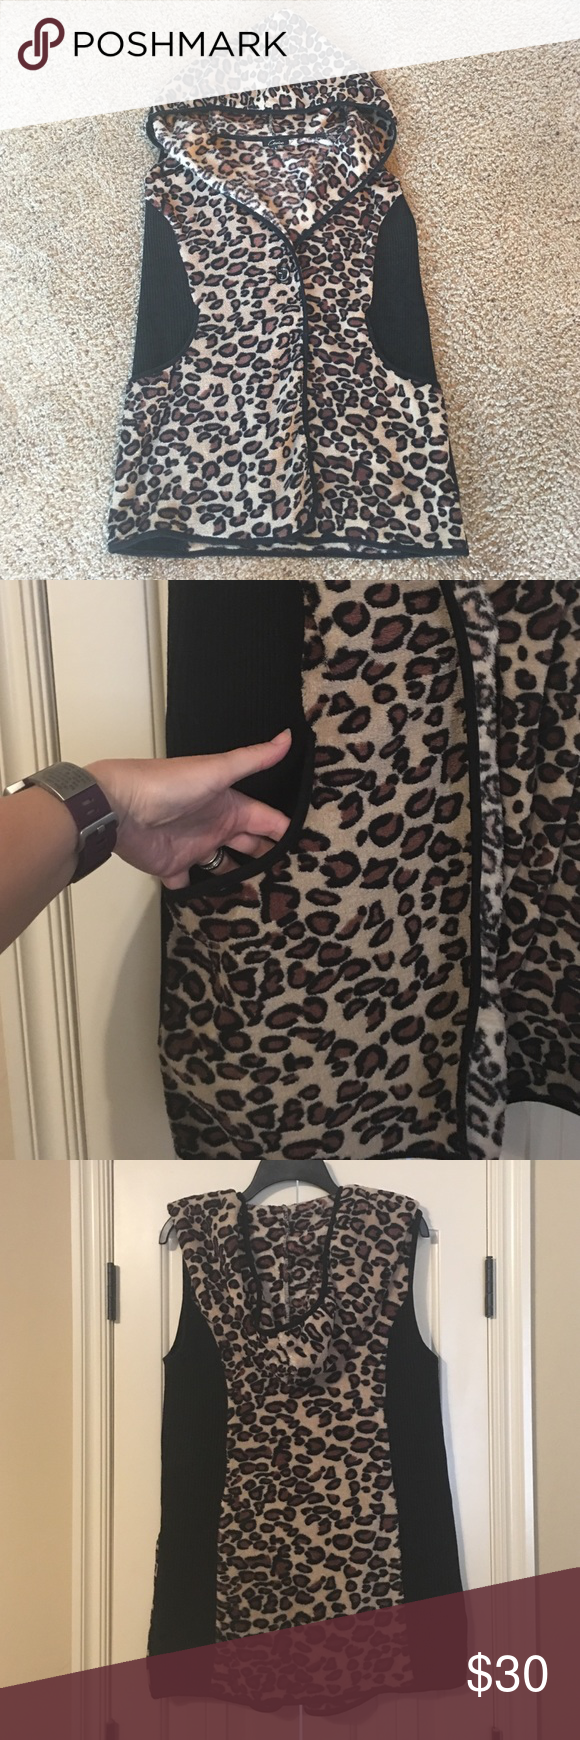 Sleeveless Leopard Print Hoodie Leopard print and black sleeveless hoodie. Black panels are ribbed. Leopard print is similar to terry cloth. Single button closure with two pockets. Boutique Tops Sweatshirts & Hoodies